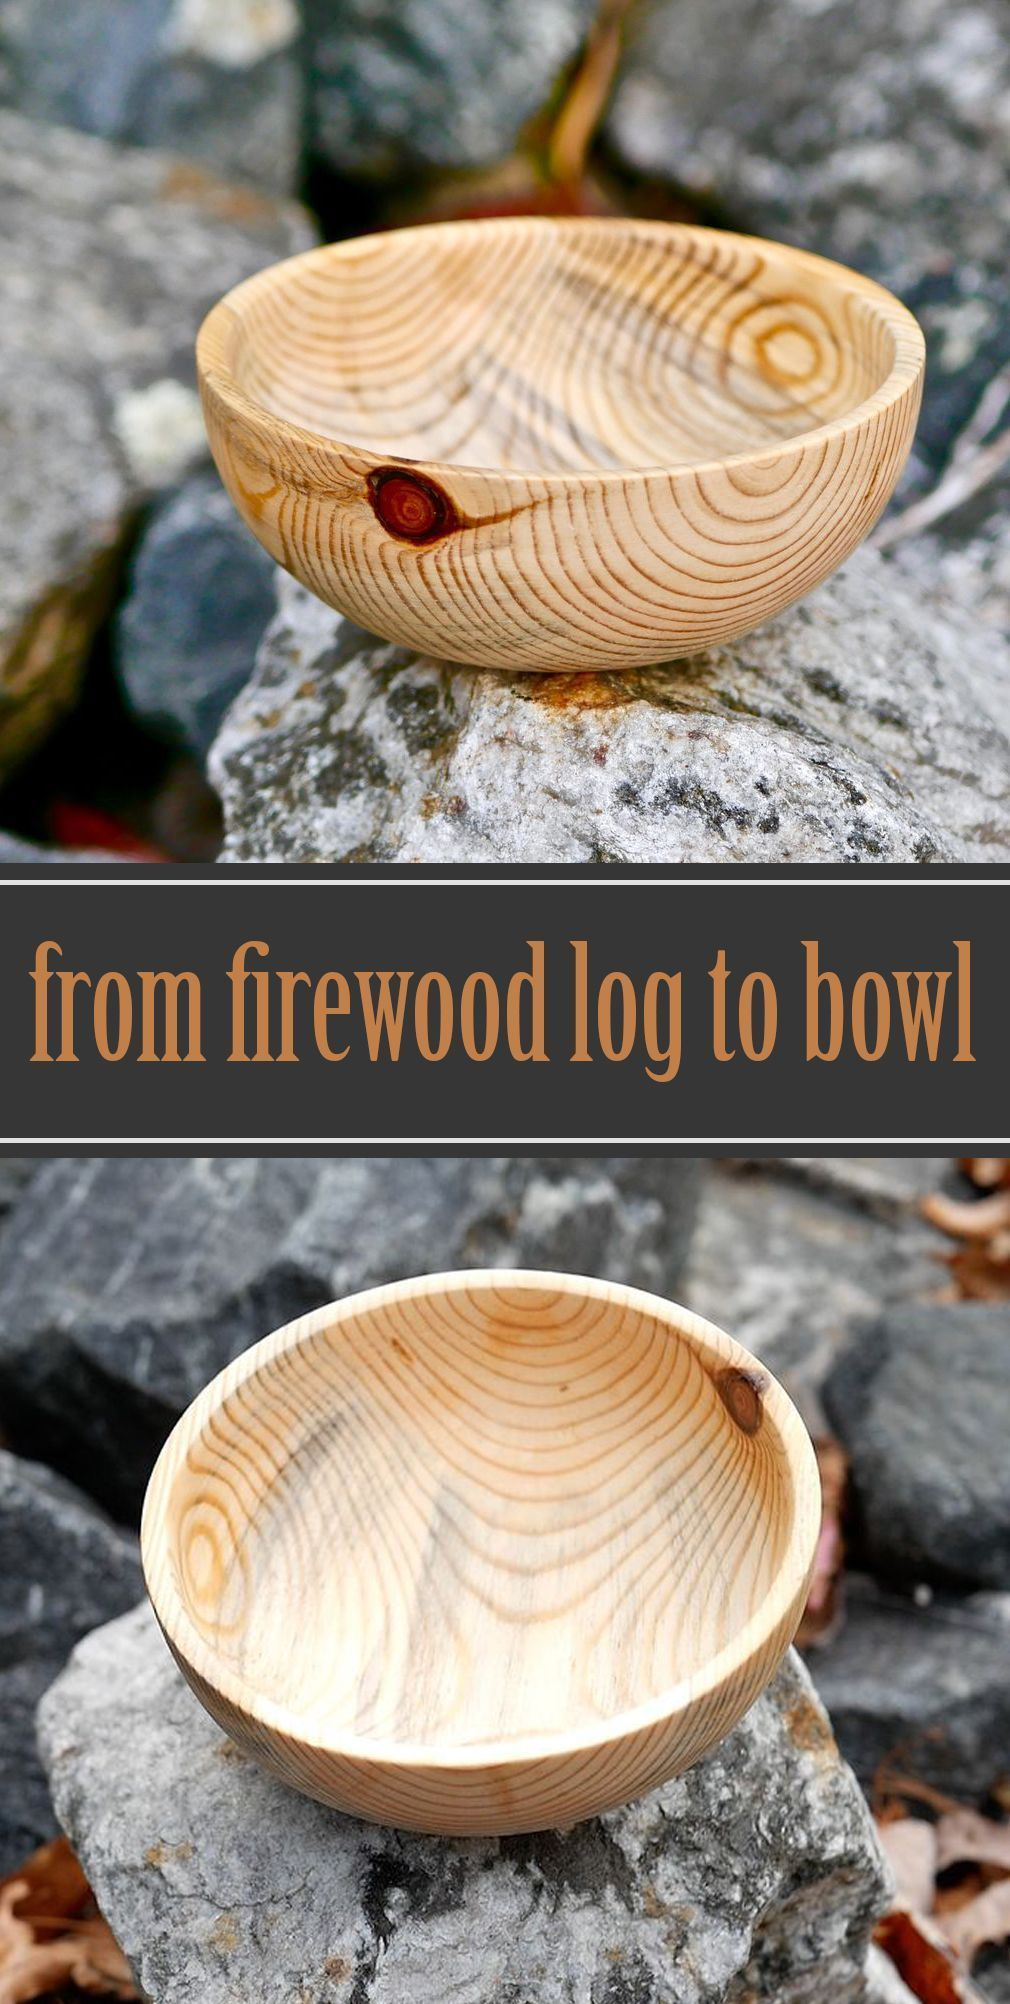 Wood turning project from firewood log easy for beginners